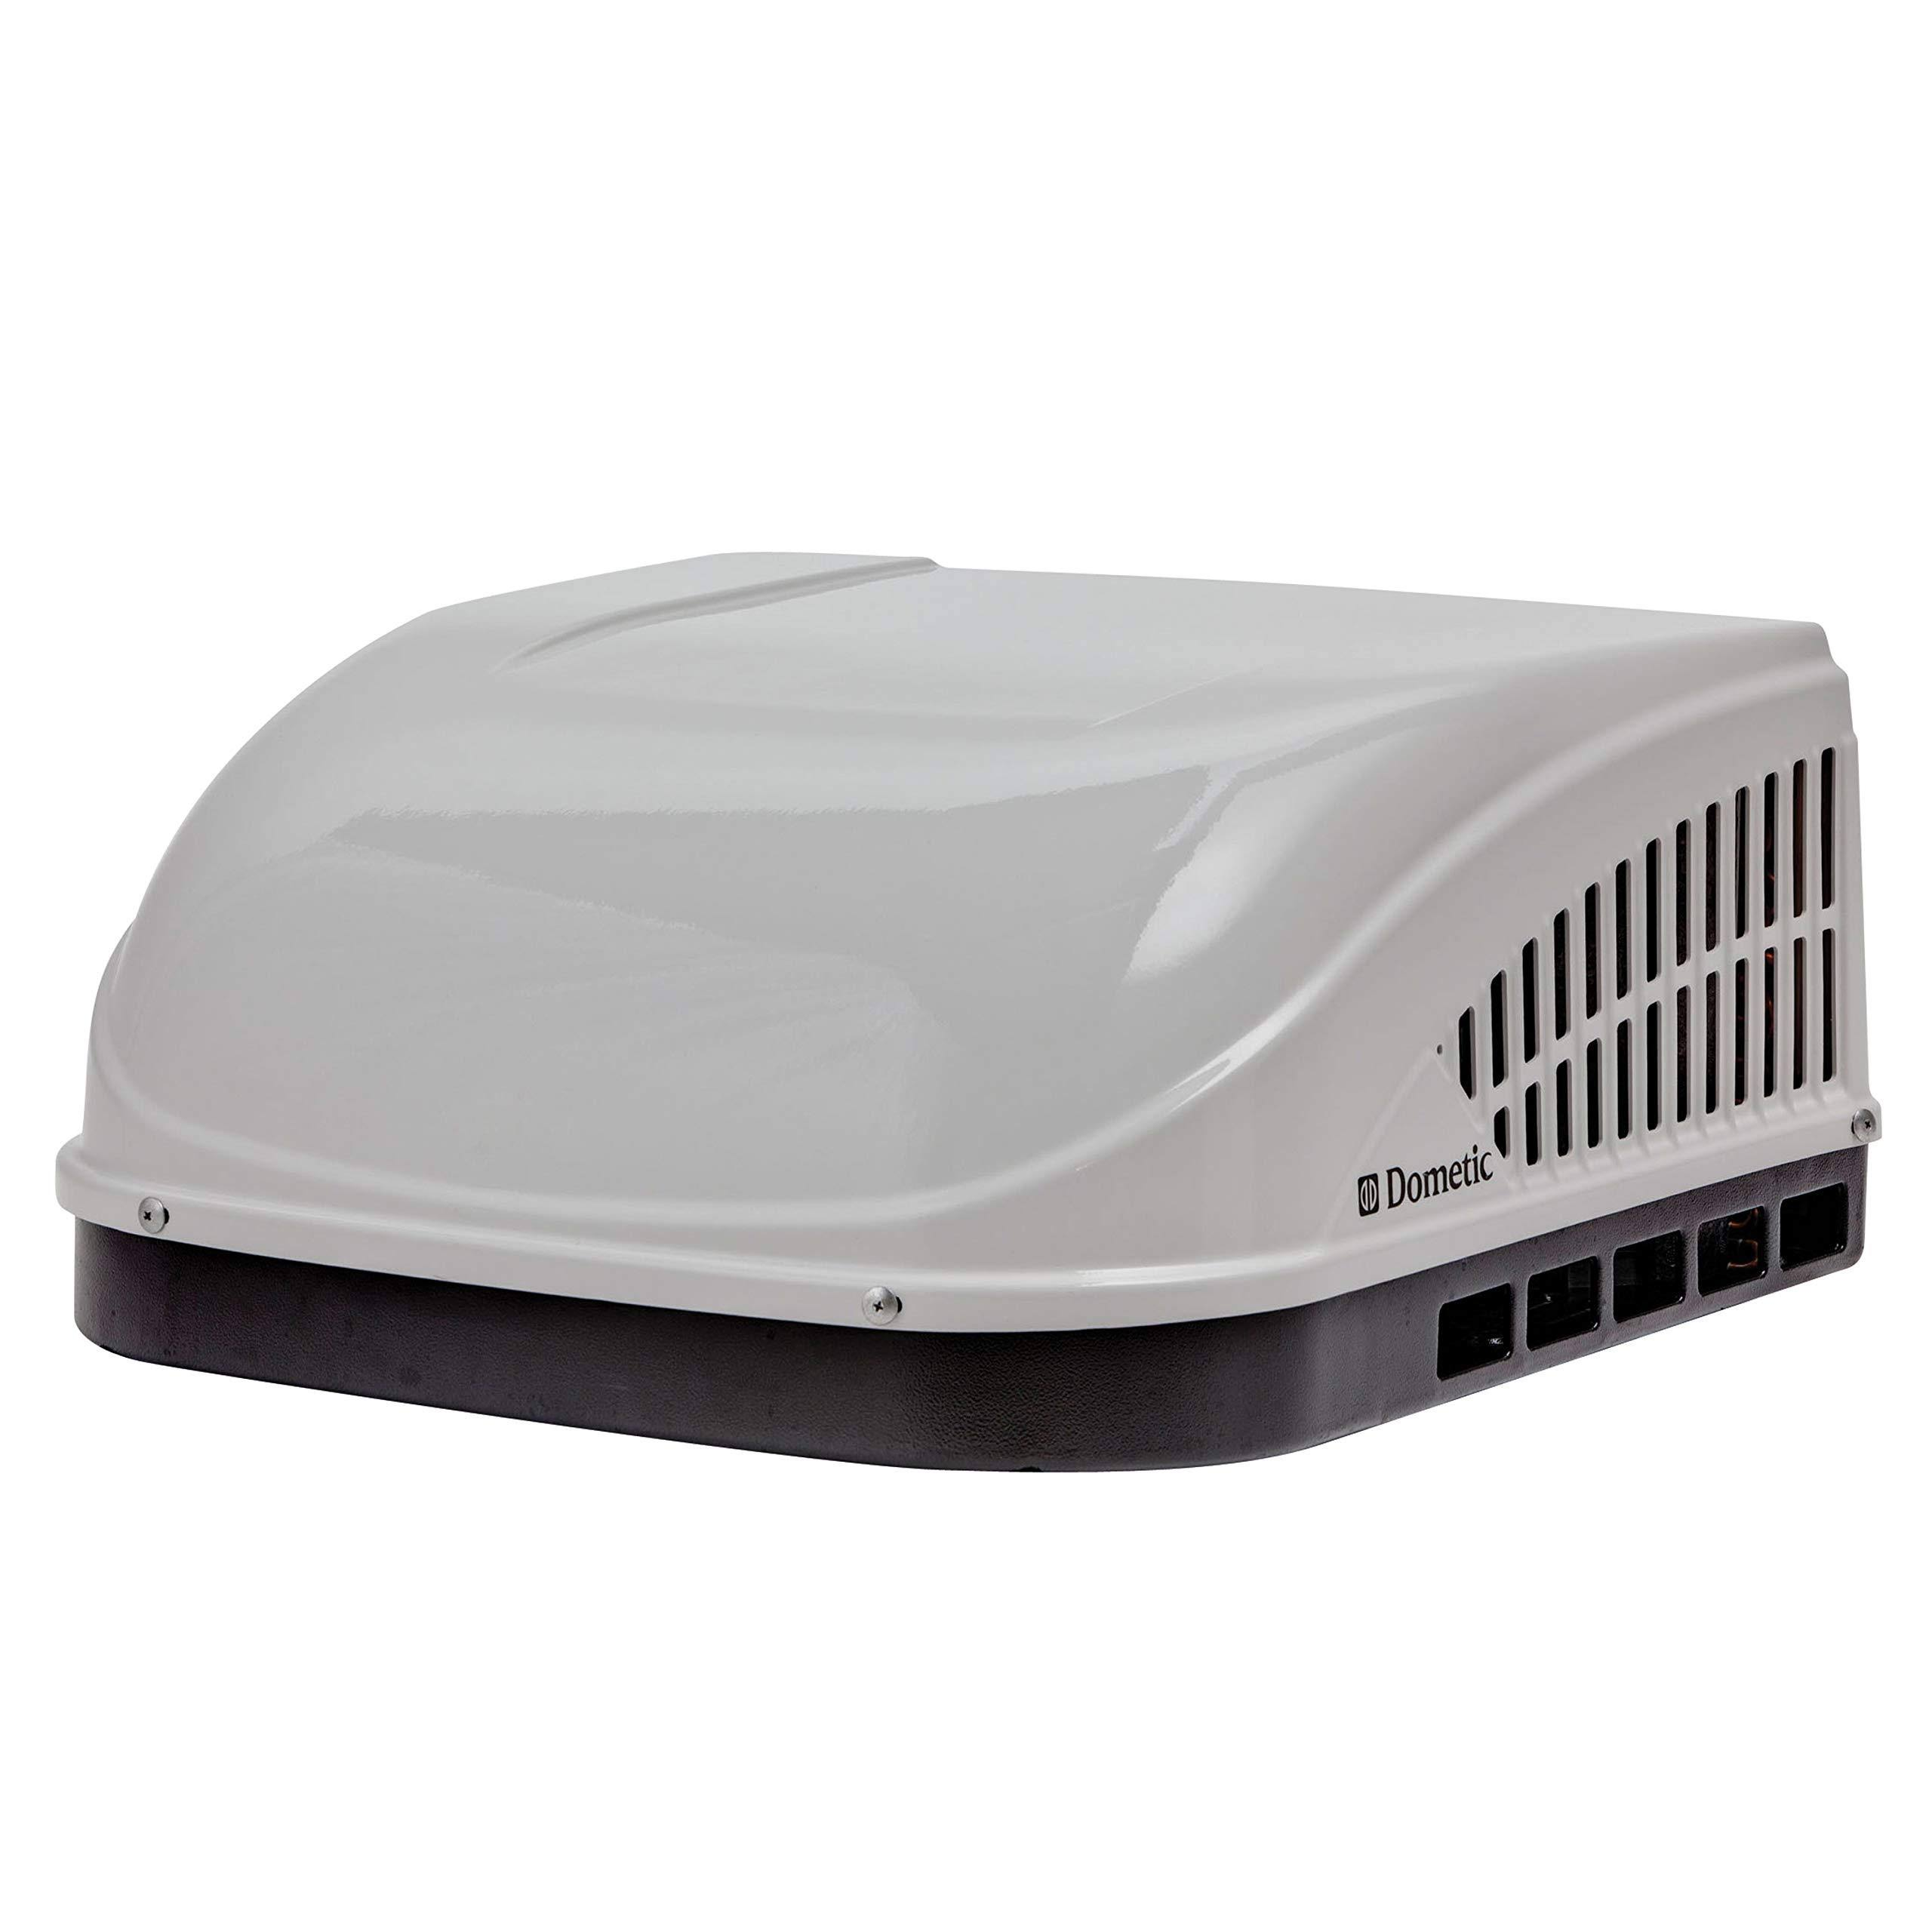 Dometic B57915.XX1C0 Polar White Brisk II Air Conditioner